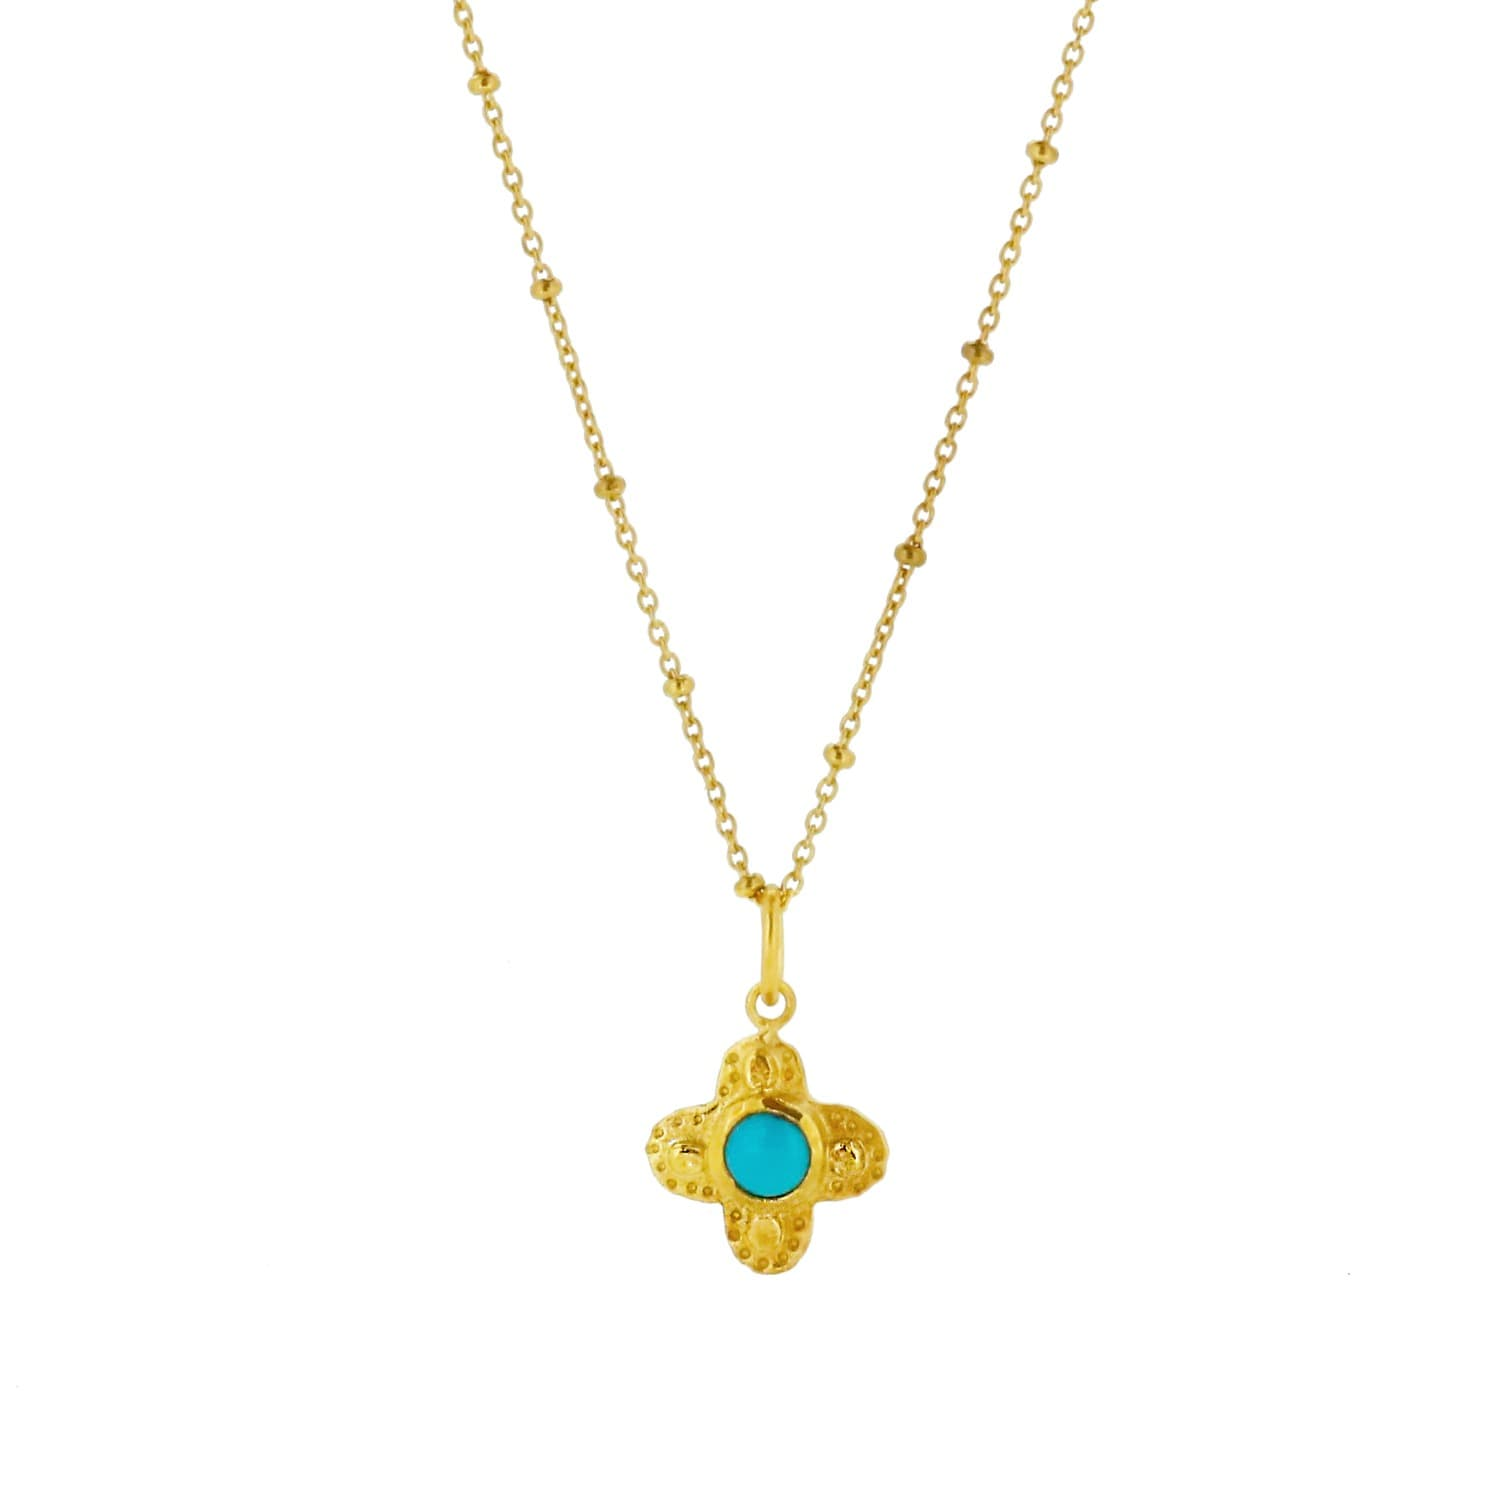 Clover Necklace with Turquoise Stone Gold image 262ce7c8b